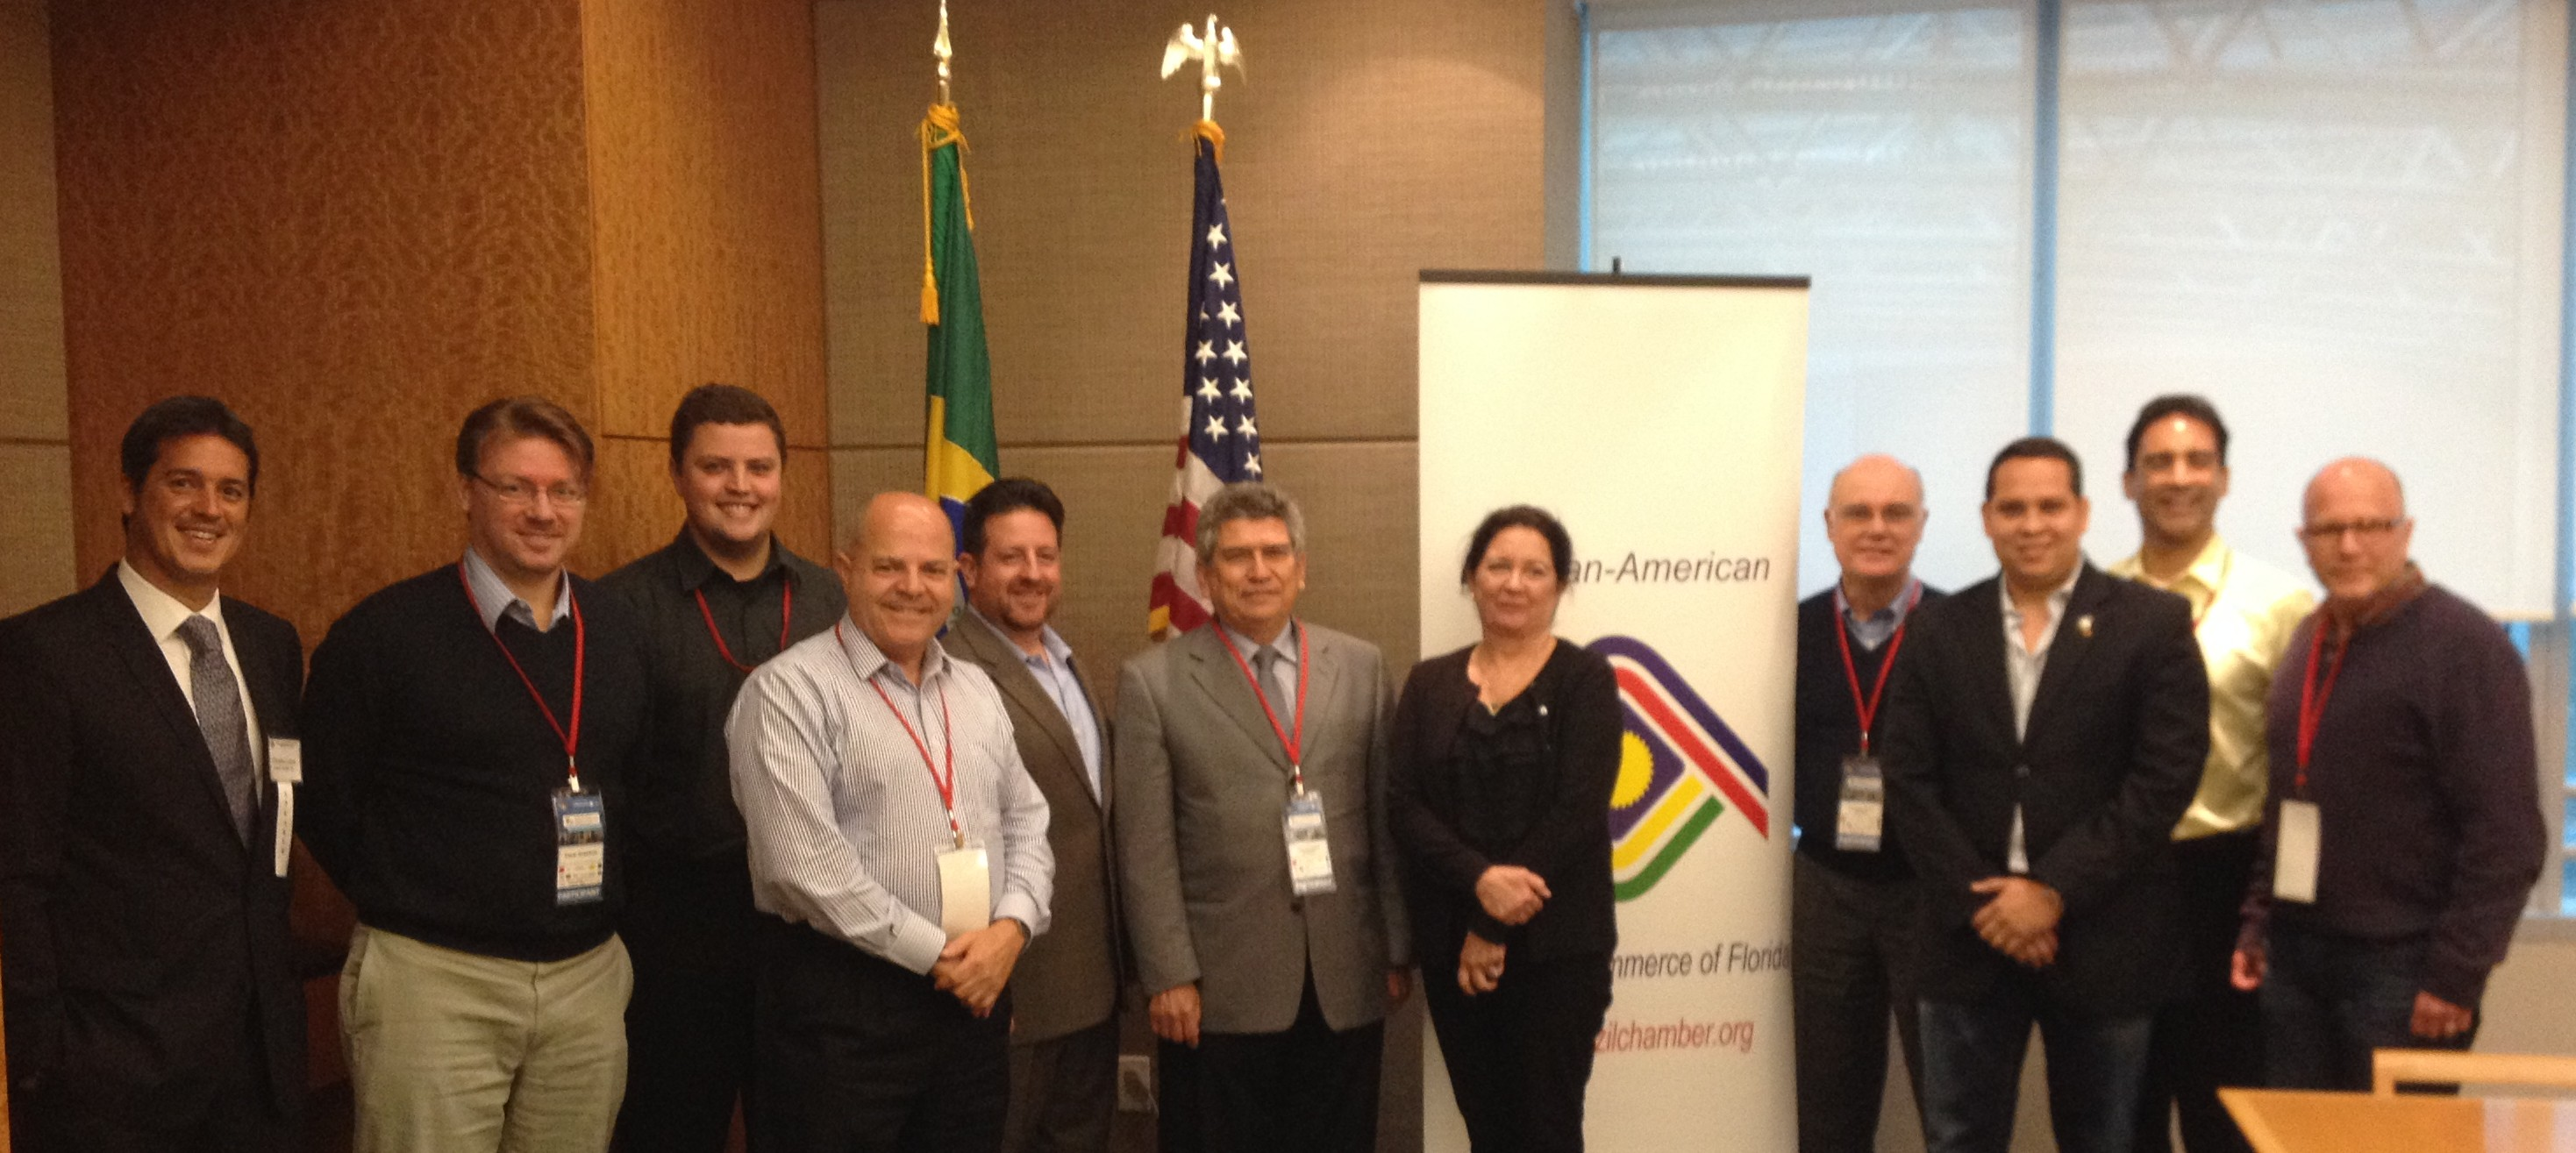 Chamber of Commerce of Florida - Brazilian-American Trade Conference